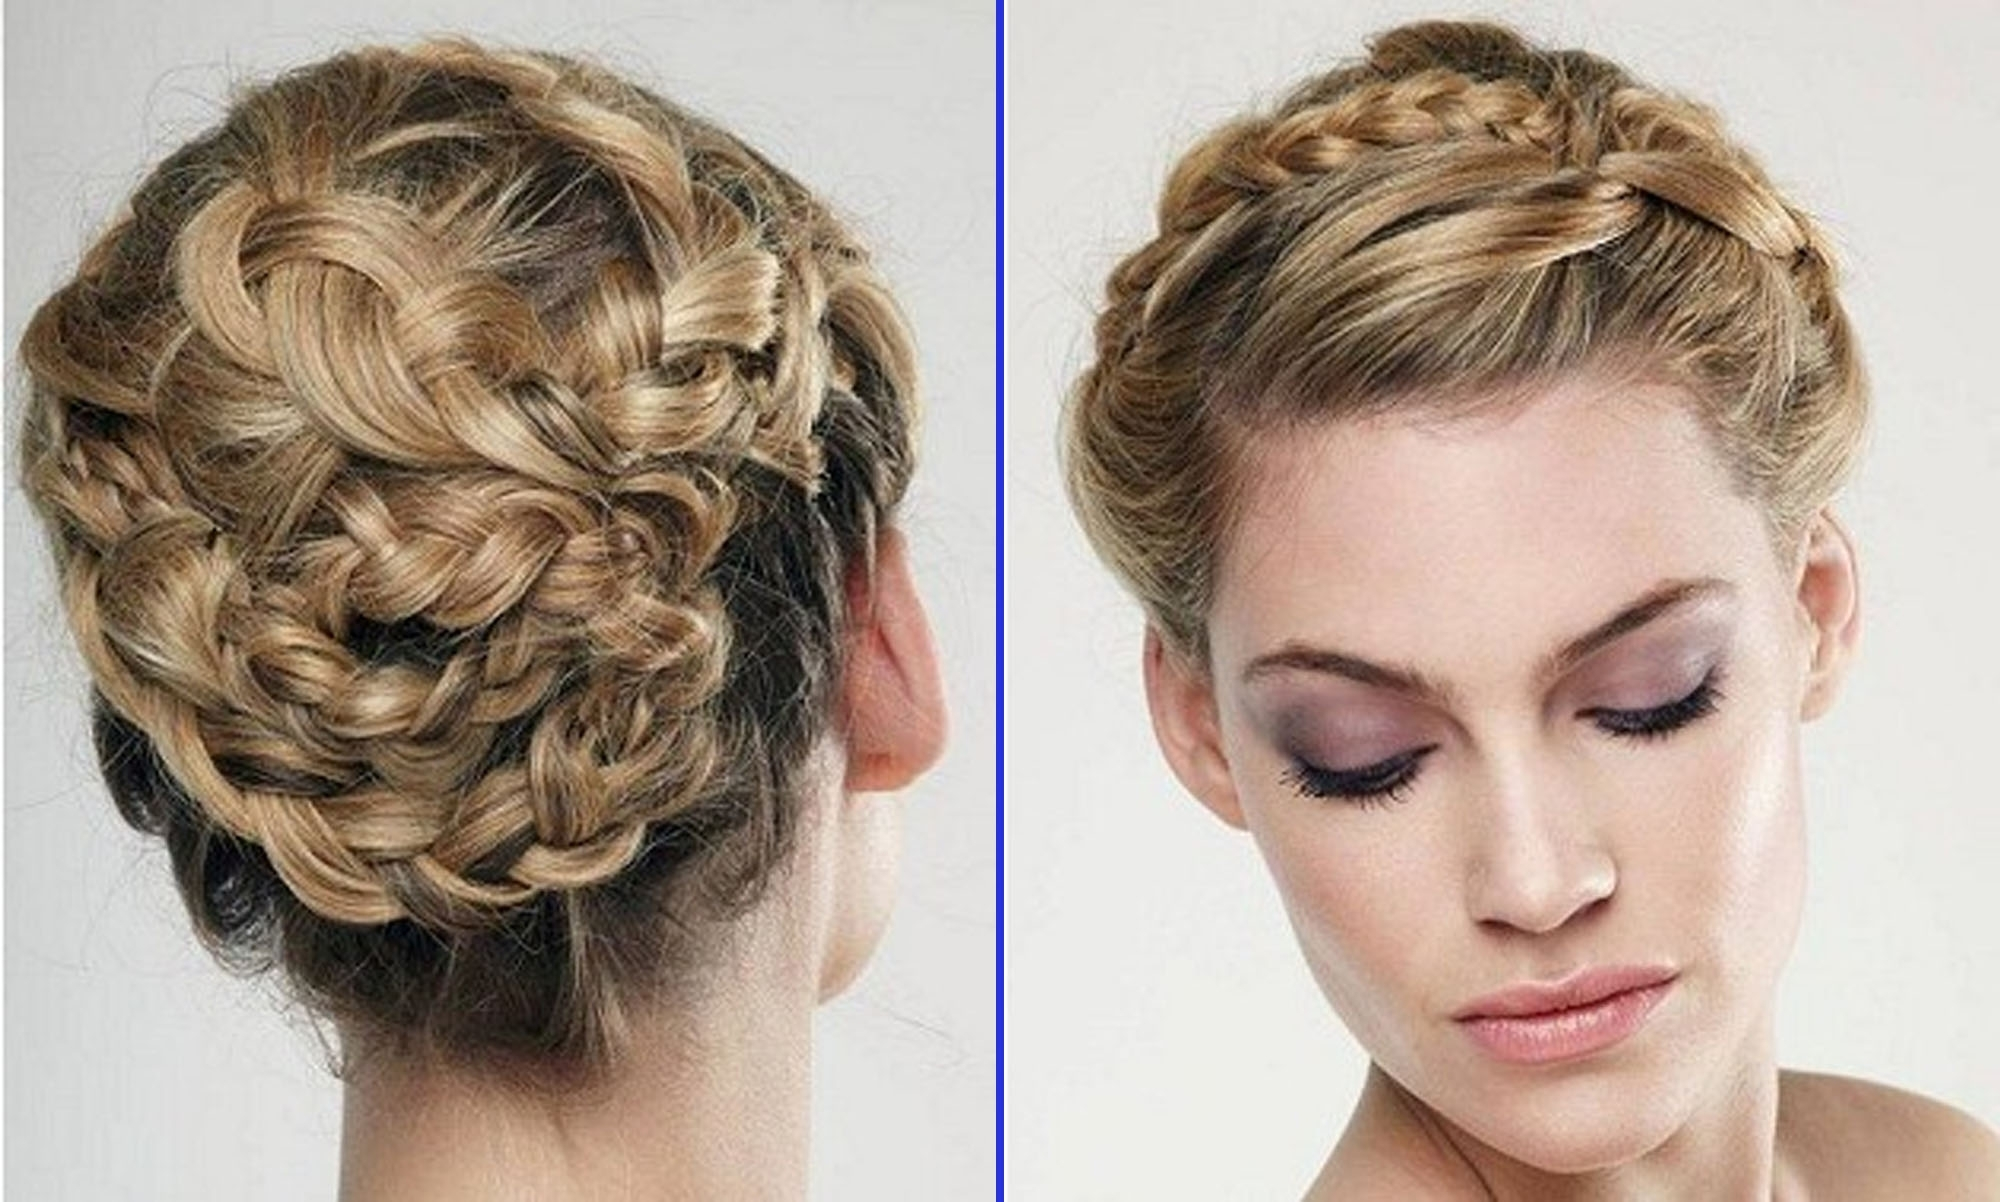 Braided Updo Hairstyles Wedding For Women Hairdresser | Medium Hair Throughout Braided Hair Updo Hairstyles (View 6 of 15)